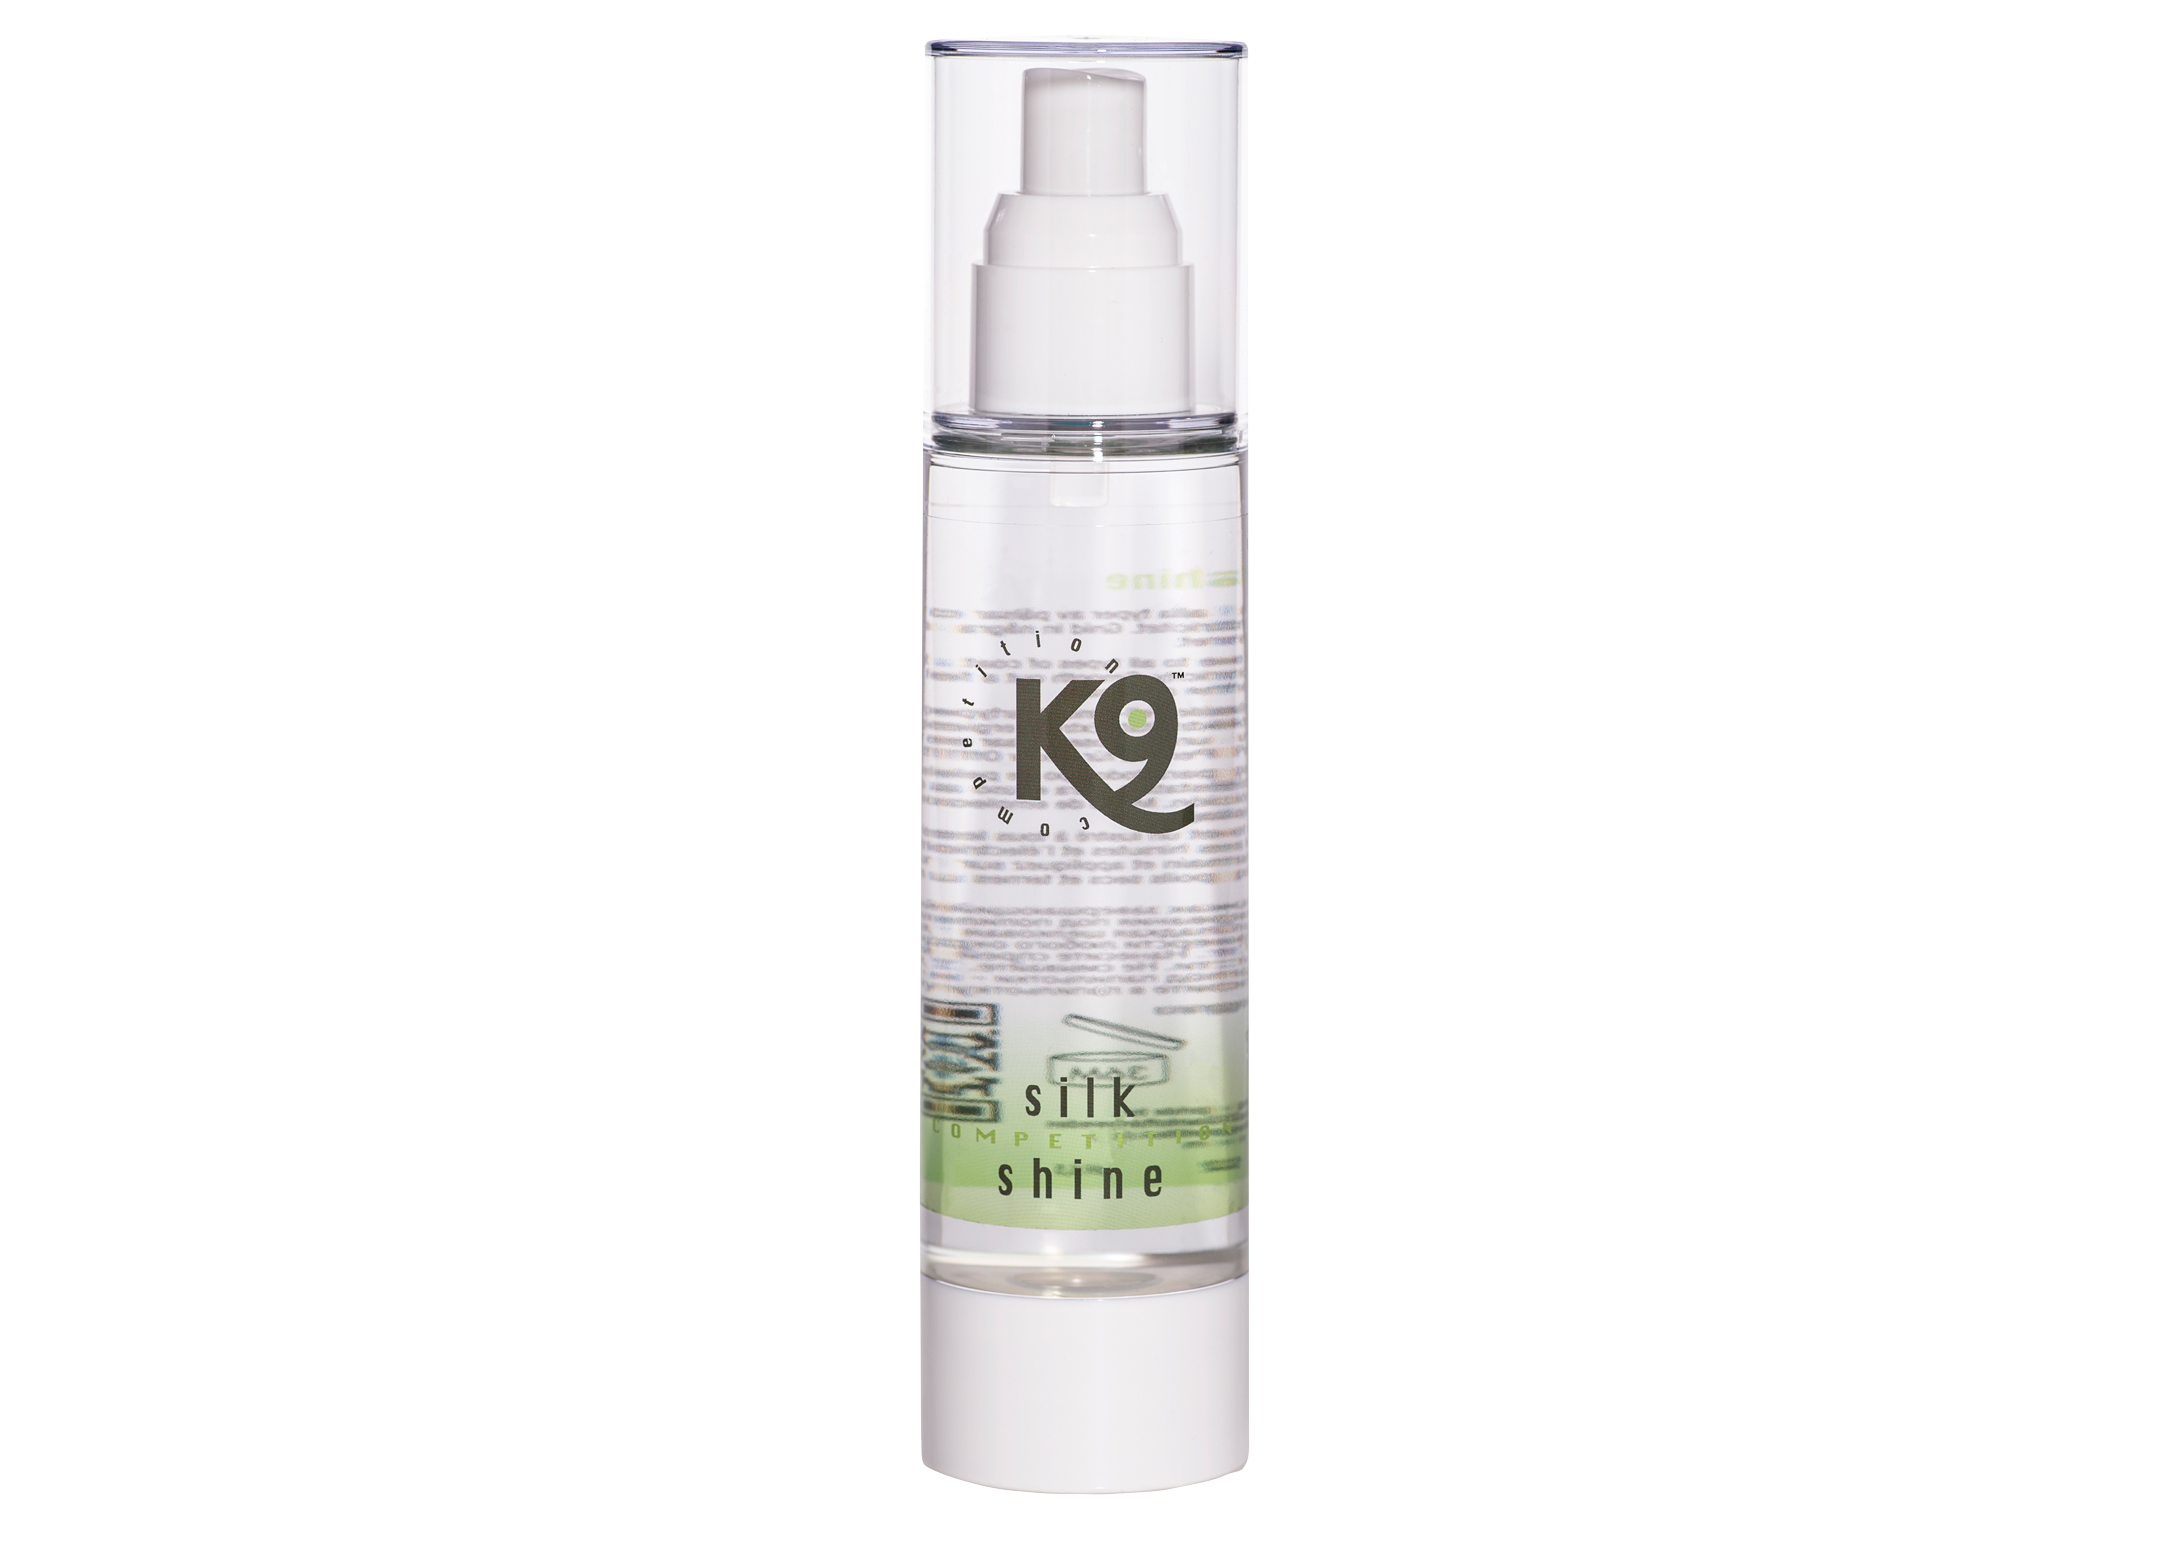 K9 Aloe Vera Silk Shine Spray de toilettage Pour Chiens et Chats